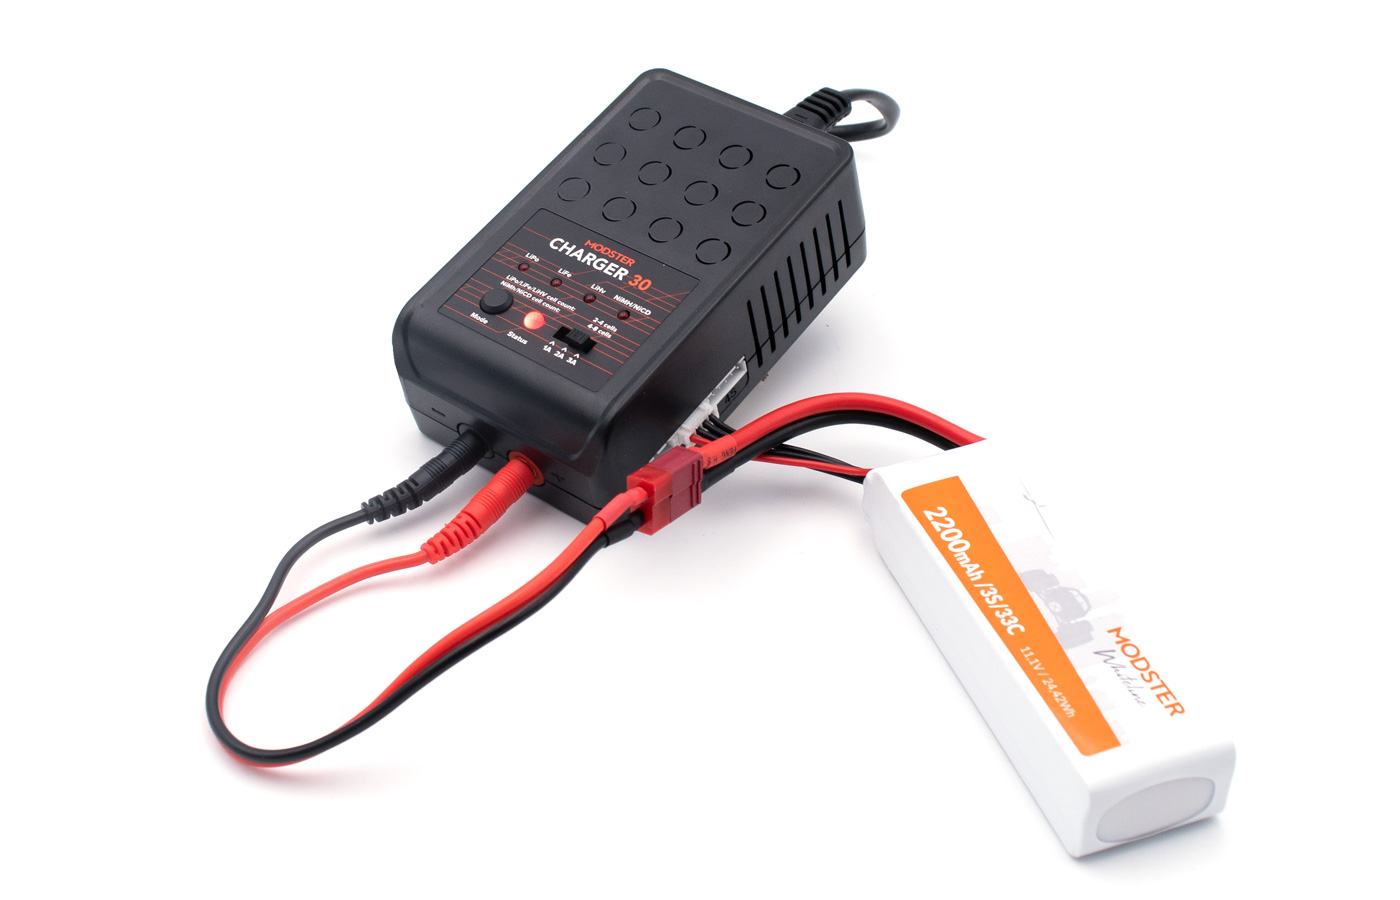 Ladegerät AC MODSTER 30 Charger LiPo 2 4S 3A 30W